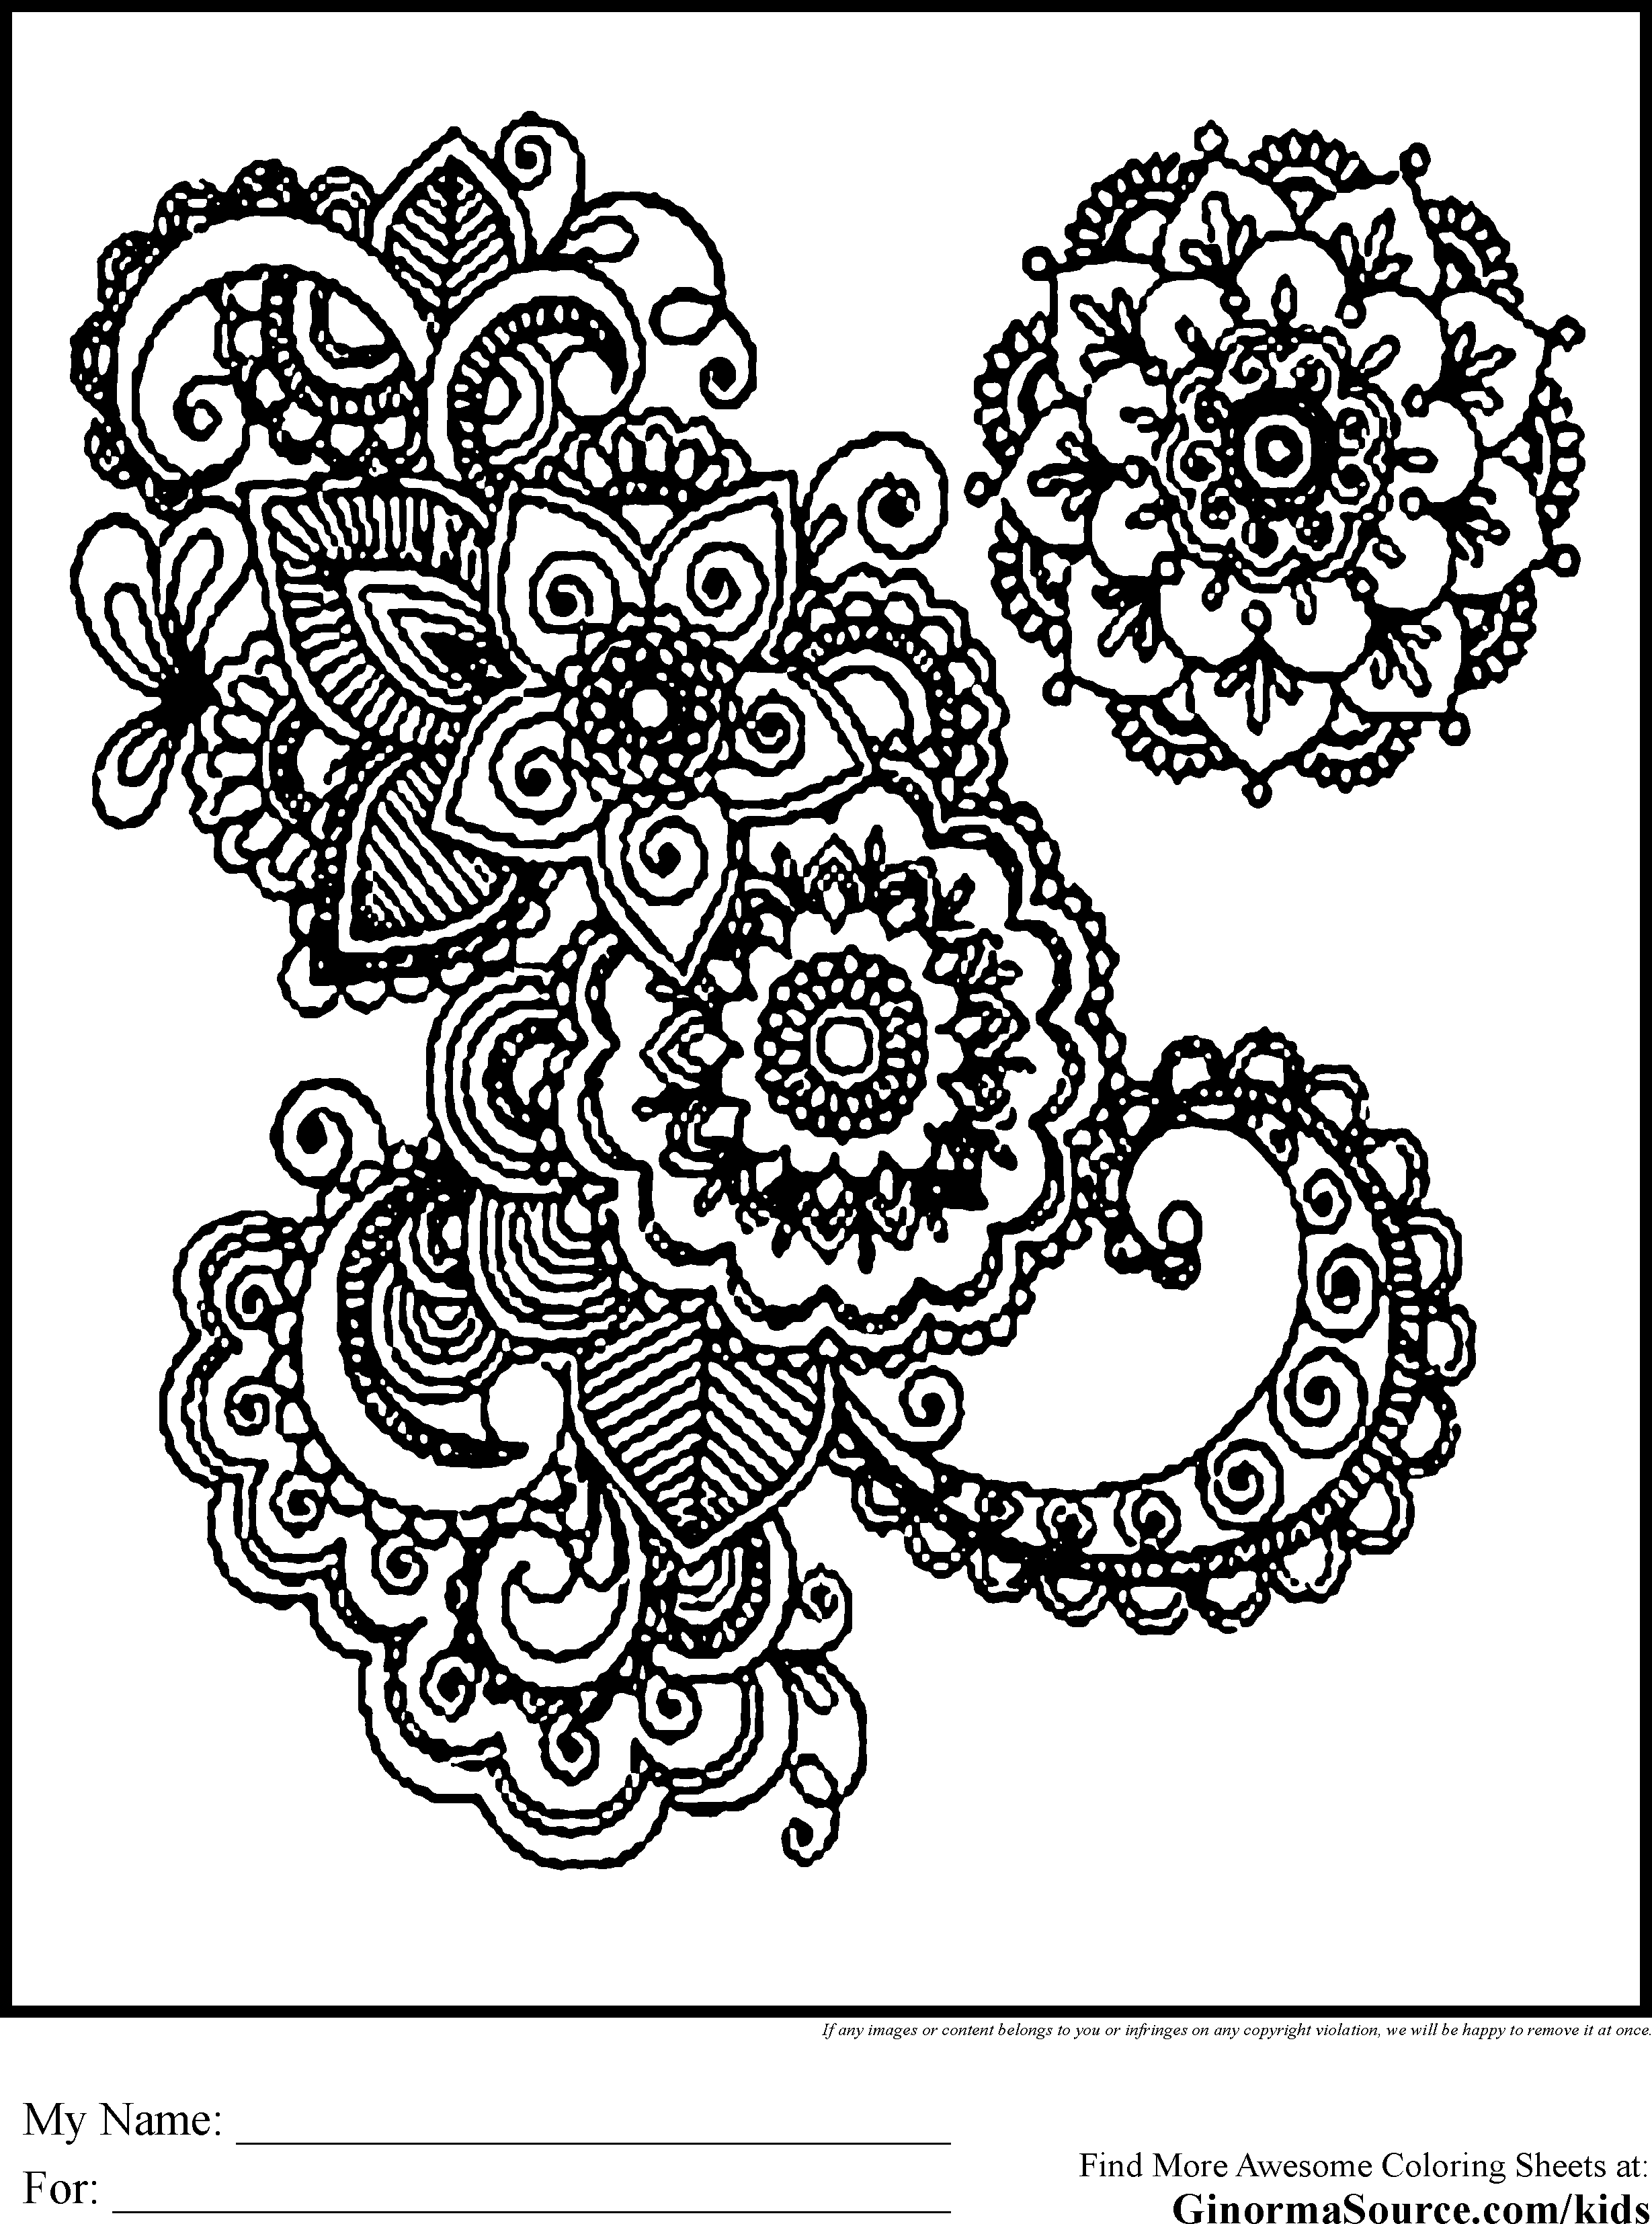 coloring pages designs free printable abstract coloring pages for adults coloring designs pages